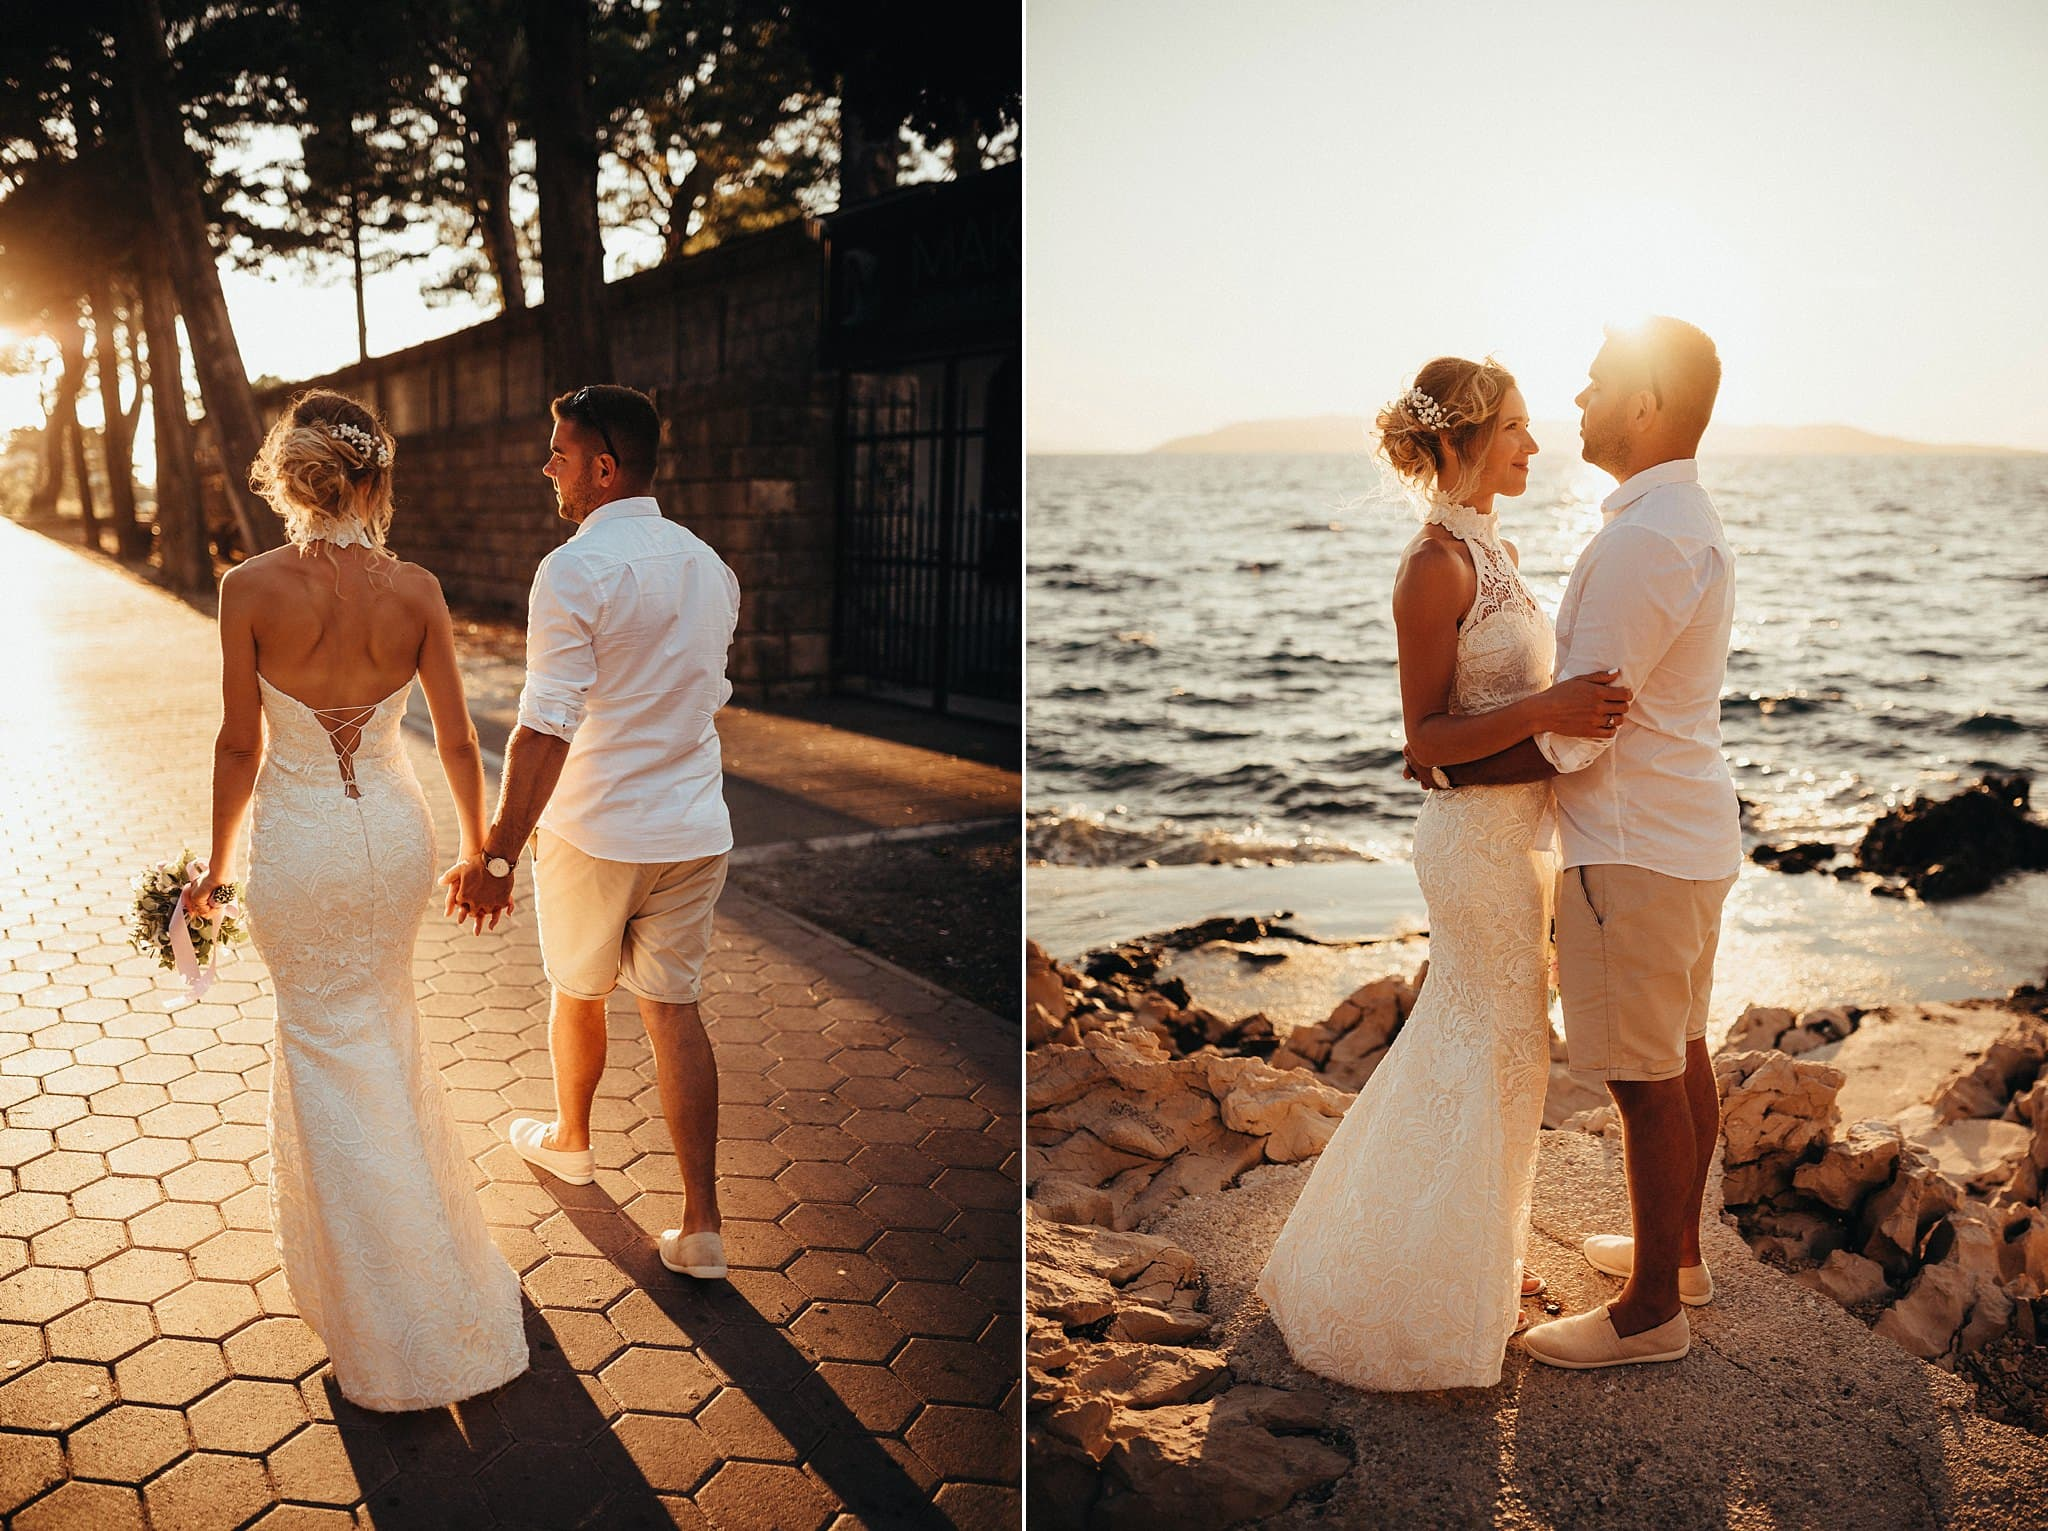 makarska wedding photographer croatia 028 - Dalmatia Wedding Photographer